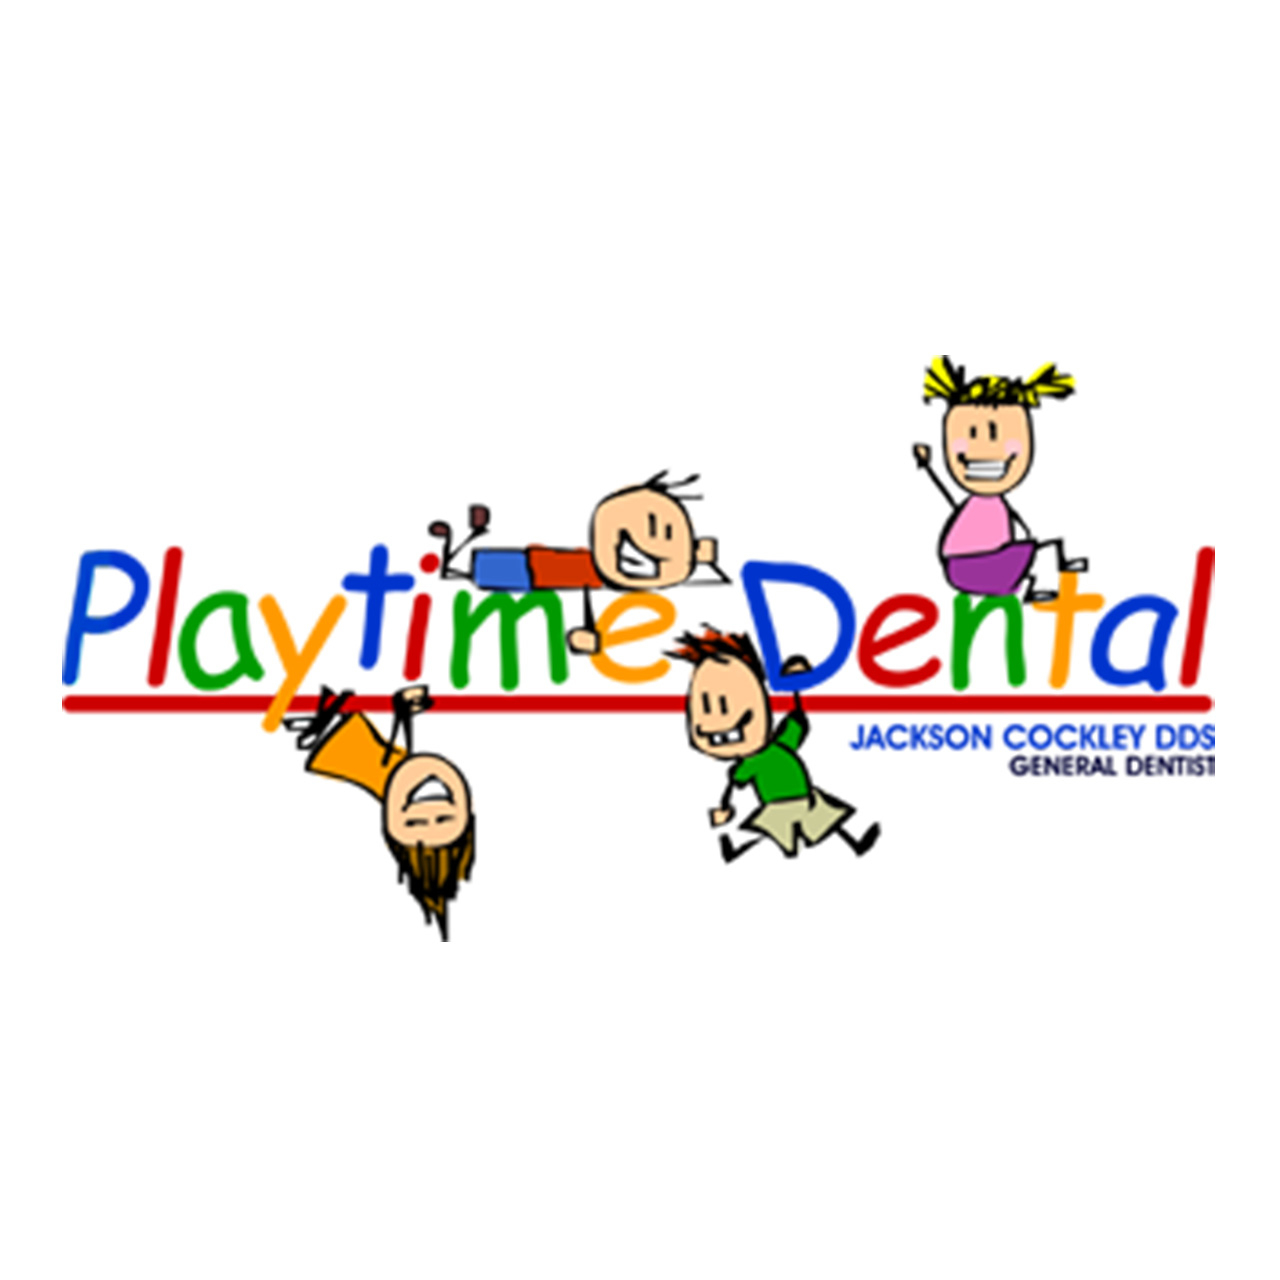 Playtime Dental image 11